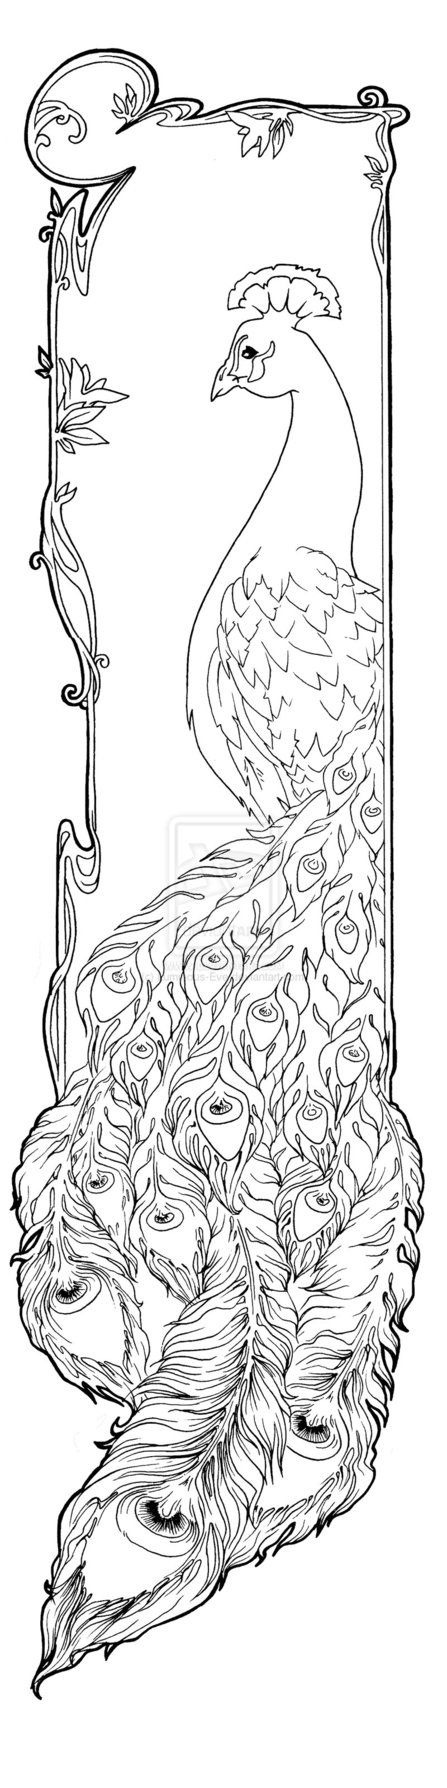 love peacock coloring page owl butterfly peacook birds on 862 pins 4885